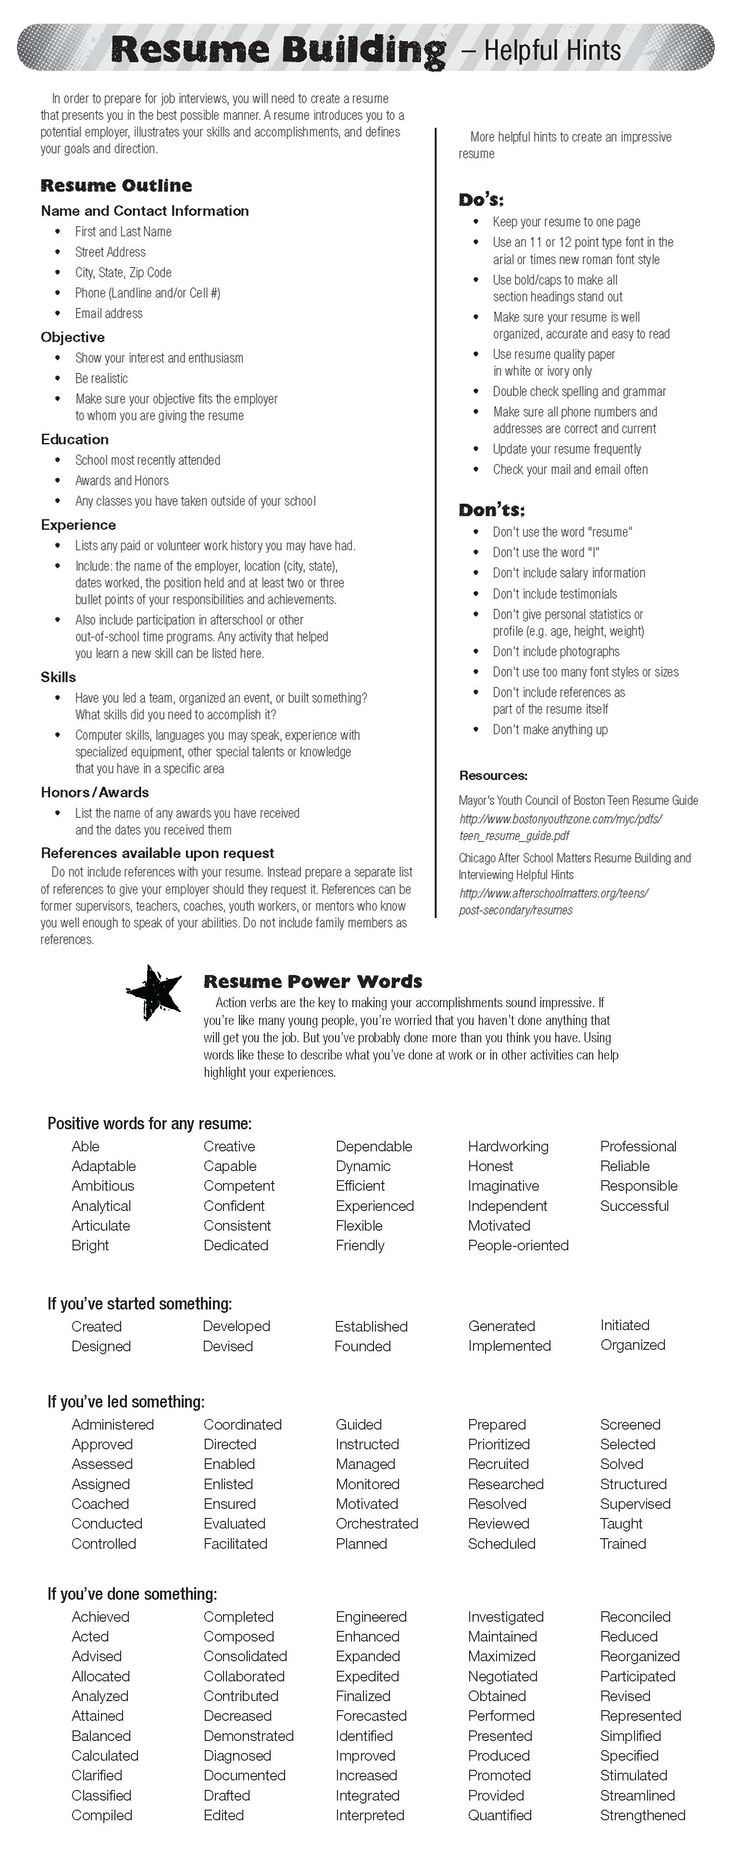 Opposenewapstandardsus  Wonderful  Ideas About Resume On Pinterest  Cv Format Resume Cv And  With Entrancing  Ideas About Resume On Pinterest  Cv Format Resume Cv And Resume Templates With Agreeable Legal Resume Also Administrative Assistant Resume Sample In Addition My Perfect Resume Login And High School Student Resume Template As Well As Work Resume Template Additionally Perfect Resume Example From Pinterestcom With Opposenewapstandardsus  Entrancing  Ideas About Resume On Pinterest  Cv Format Resume Cv And  With Agreeable  Ideas About Resume On Pinterest  Cv Format Resume Cv And Resume Templates And Wonderful Legal Resume Also Administrative Assistant Resume Sample In Addition My Perfect Resume Login From Pinterestcom